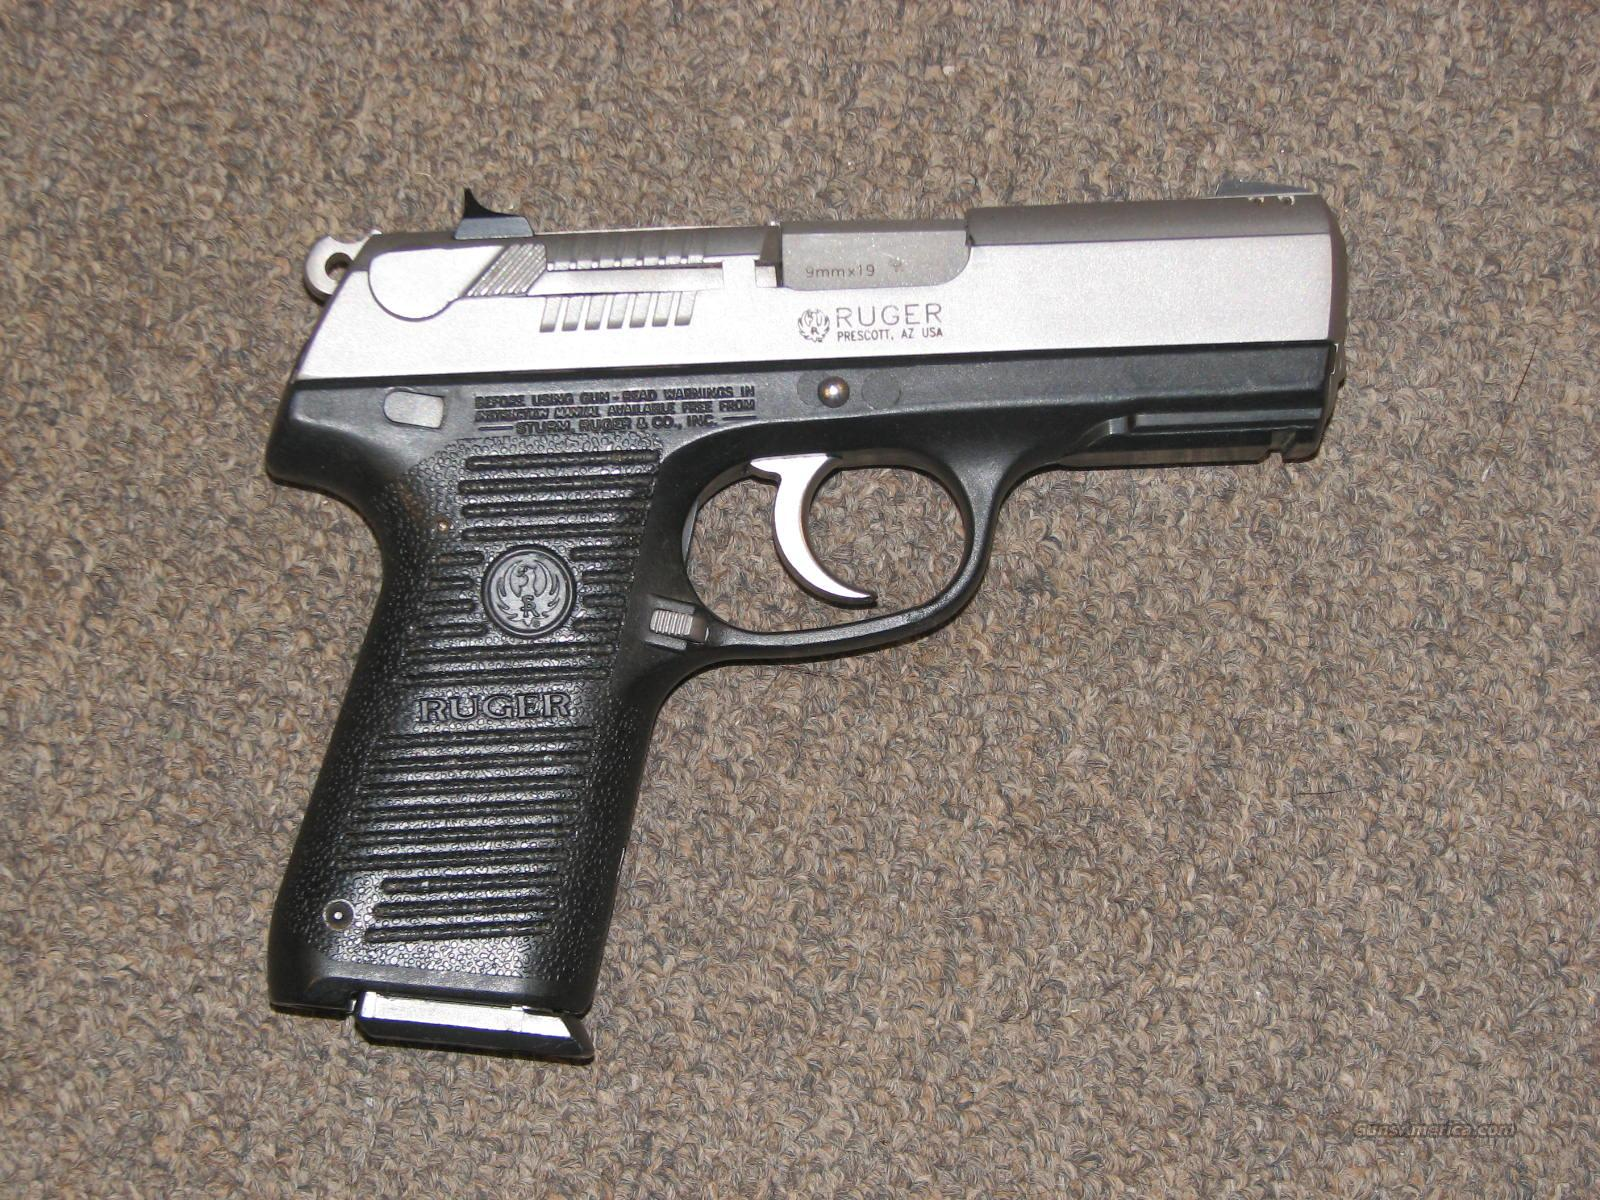 RUGER P95 STAINLESS 9mm - LIKE NIB!  Guns > Pistols > Ruger Semi-Auto Pistols > P-Series